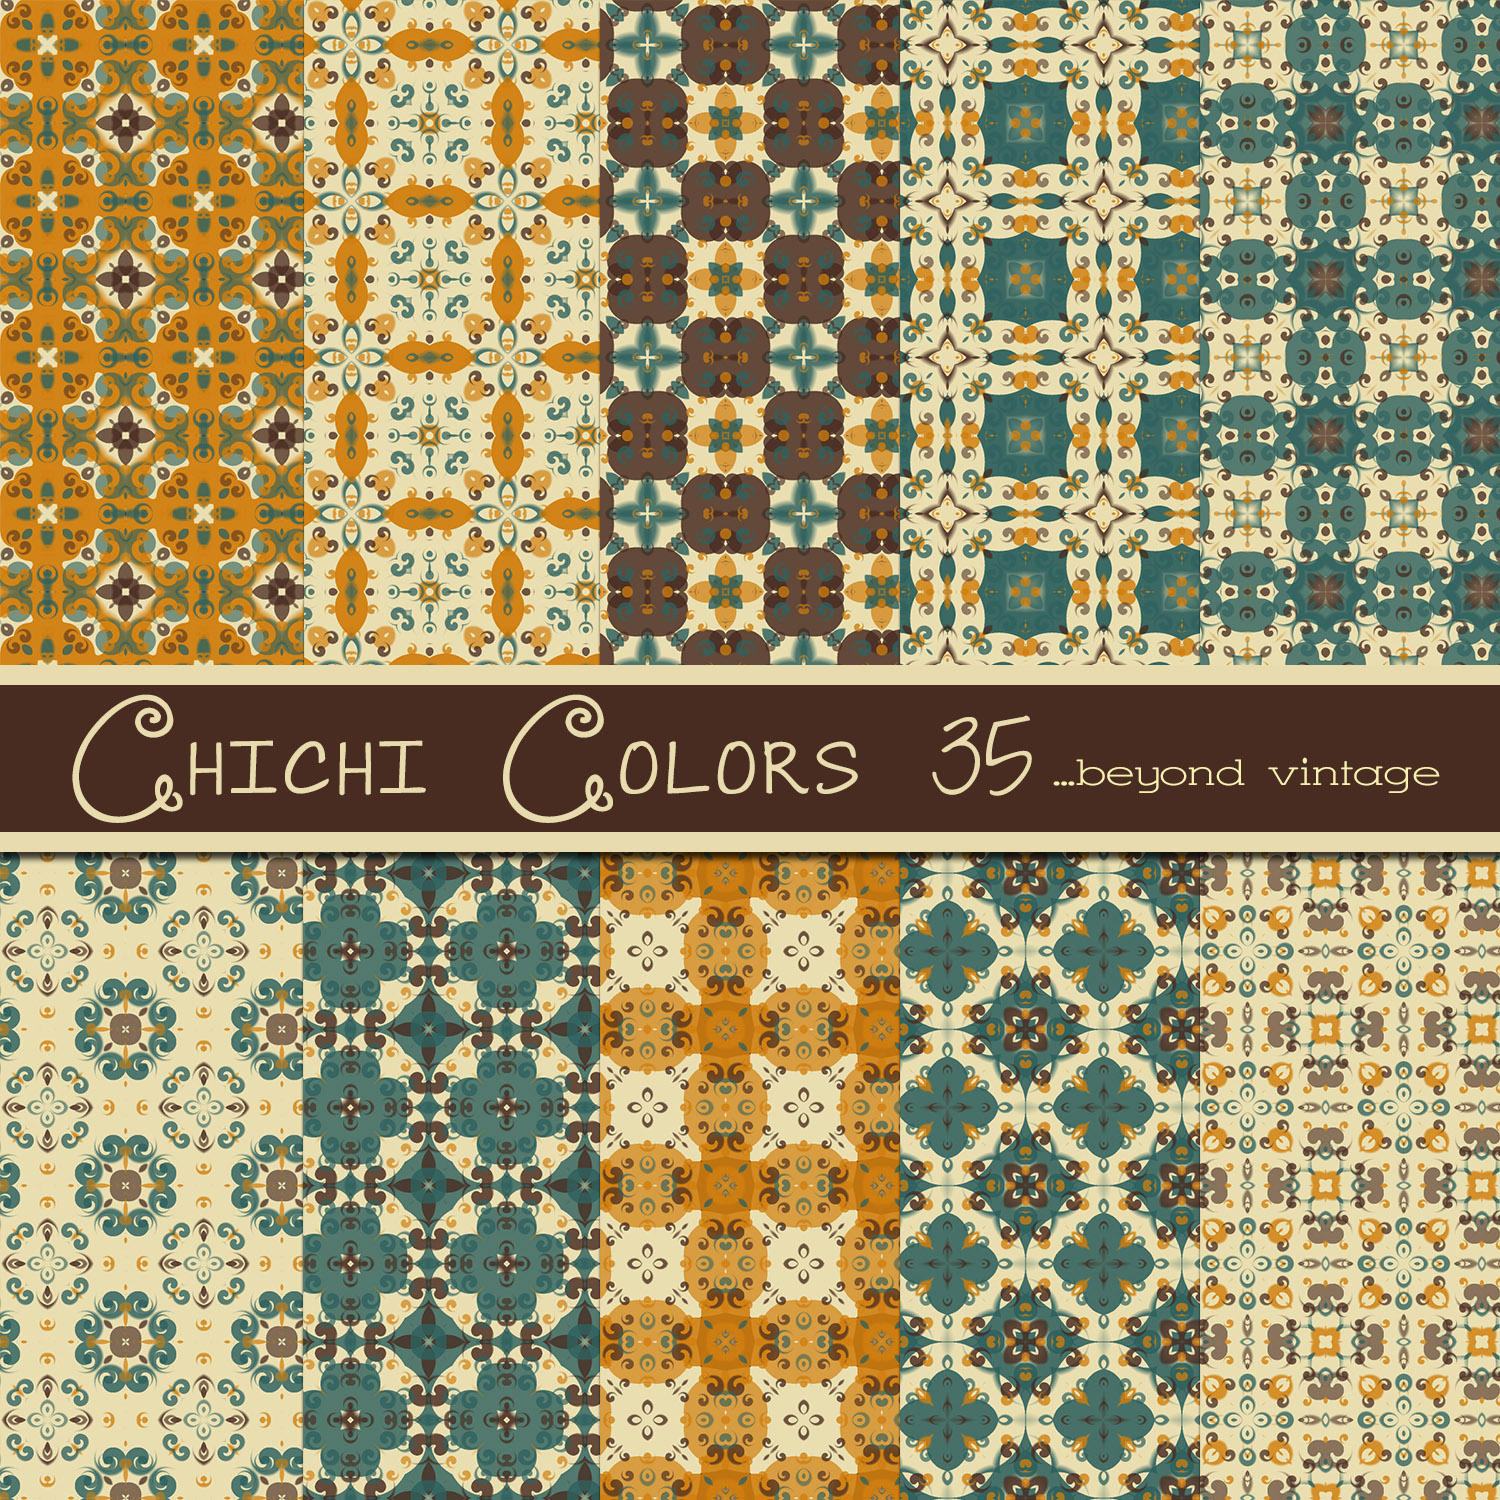 Free Chichi Colors 35